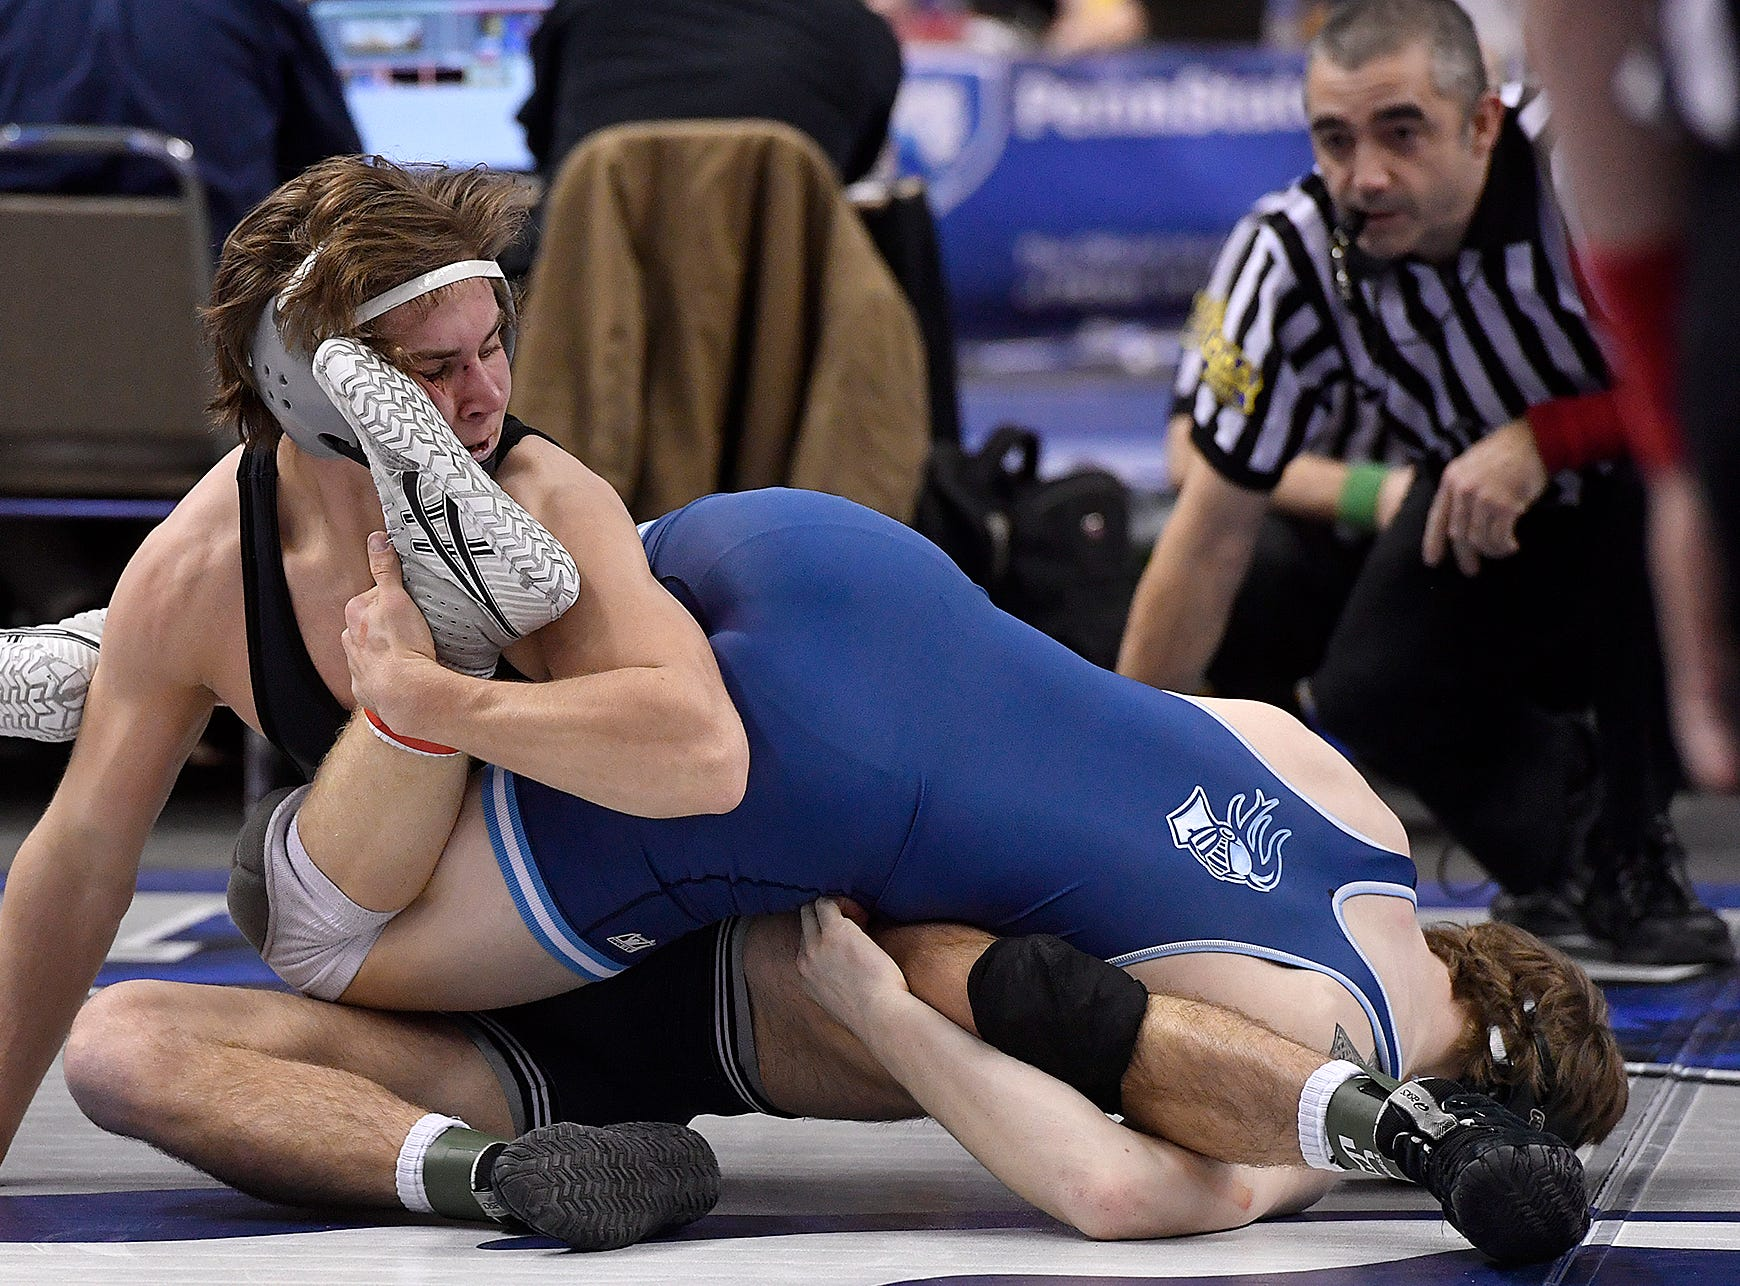 Ethan Baney of South Western, left, wrestles Patrick O'Neill of North Penn during the PIAA Class 3-A 160 pound prelim, Thursday, March 7, 2019.John A. Pavoncello photo